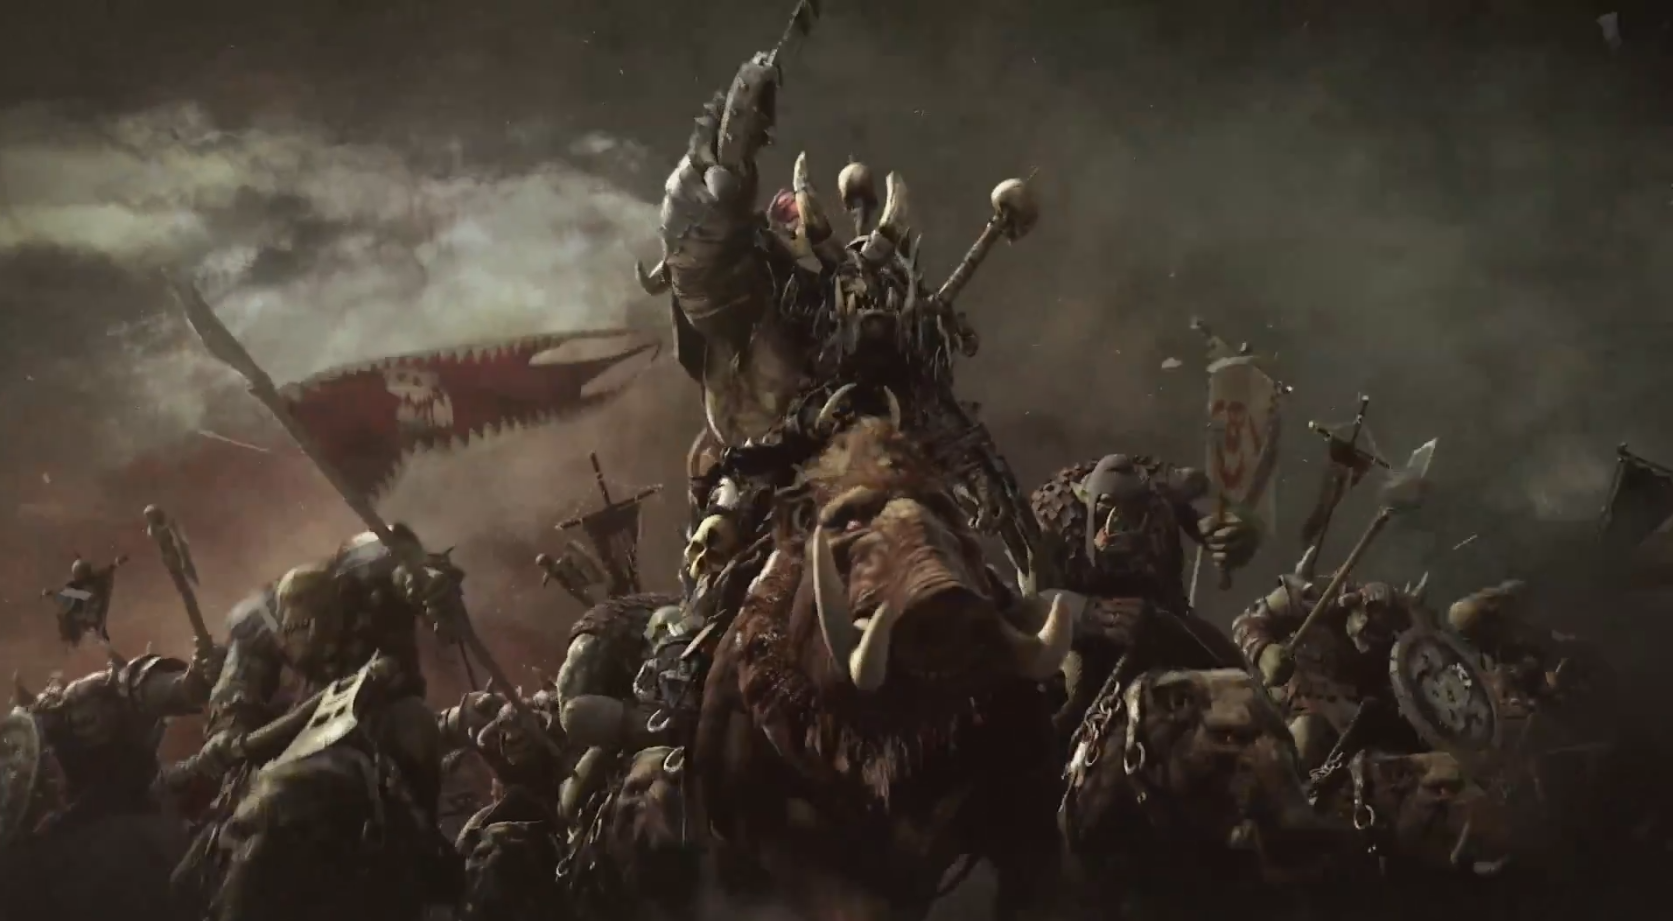 Total War: WARHAMMER Officially Annouced - The rules have changed...  The only constant is War.